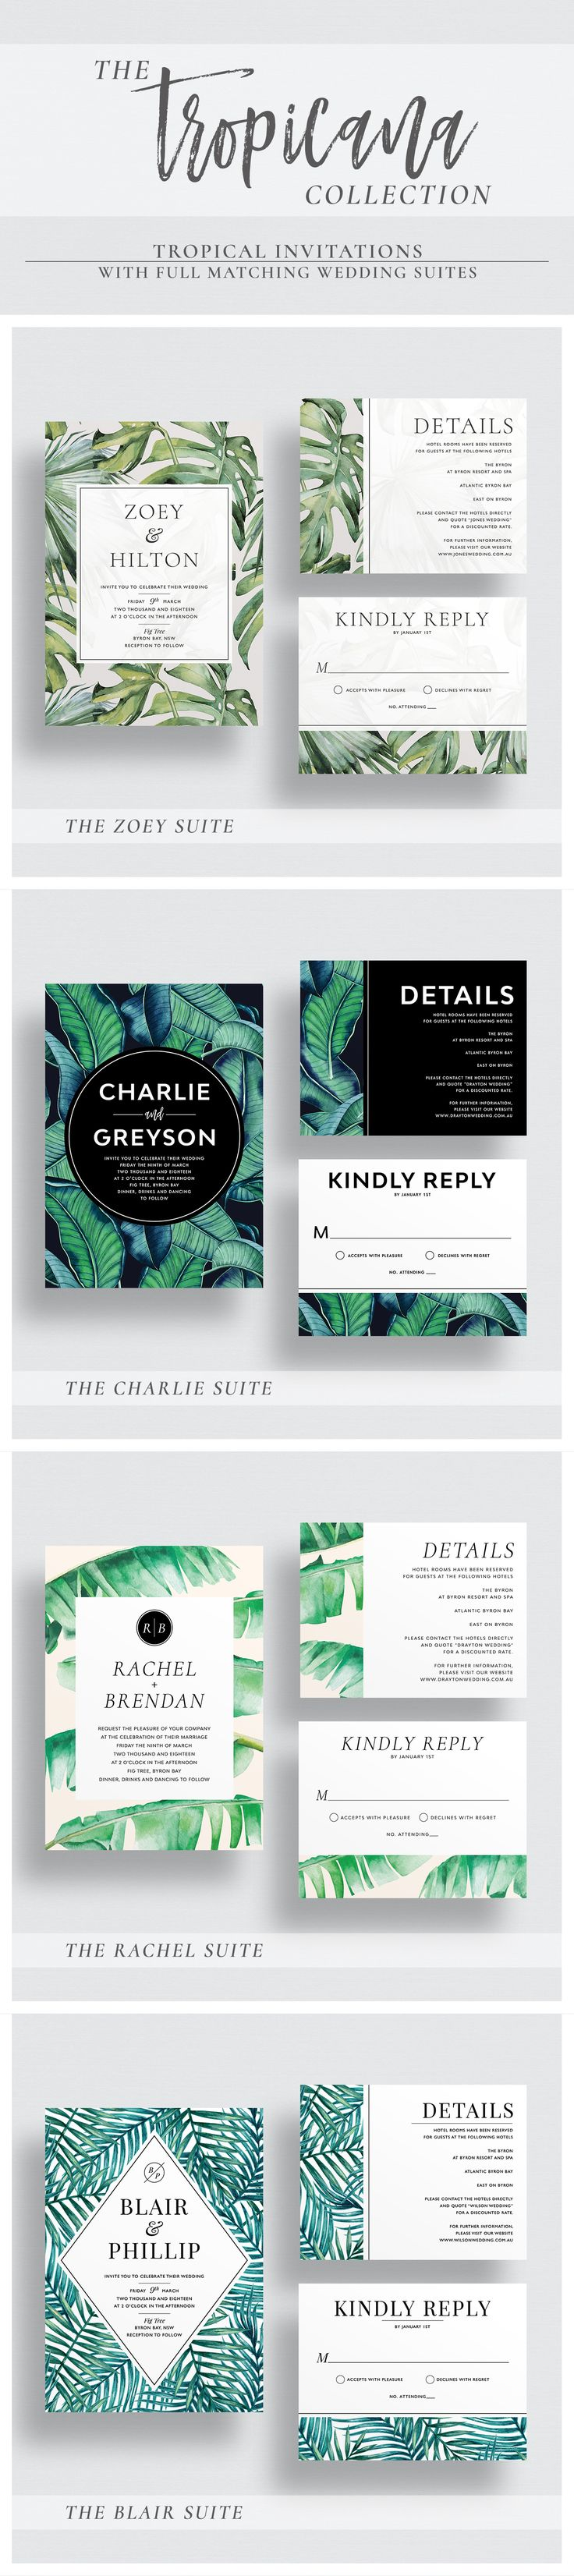 Beautiful foliage wedding invitations.